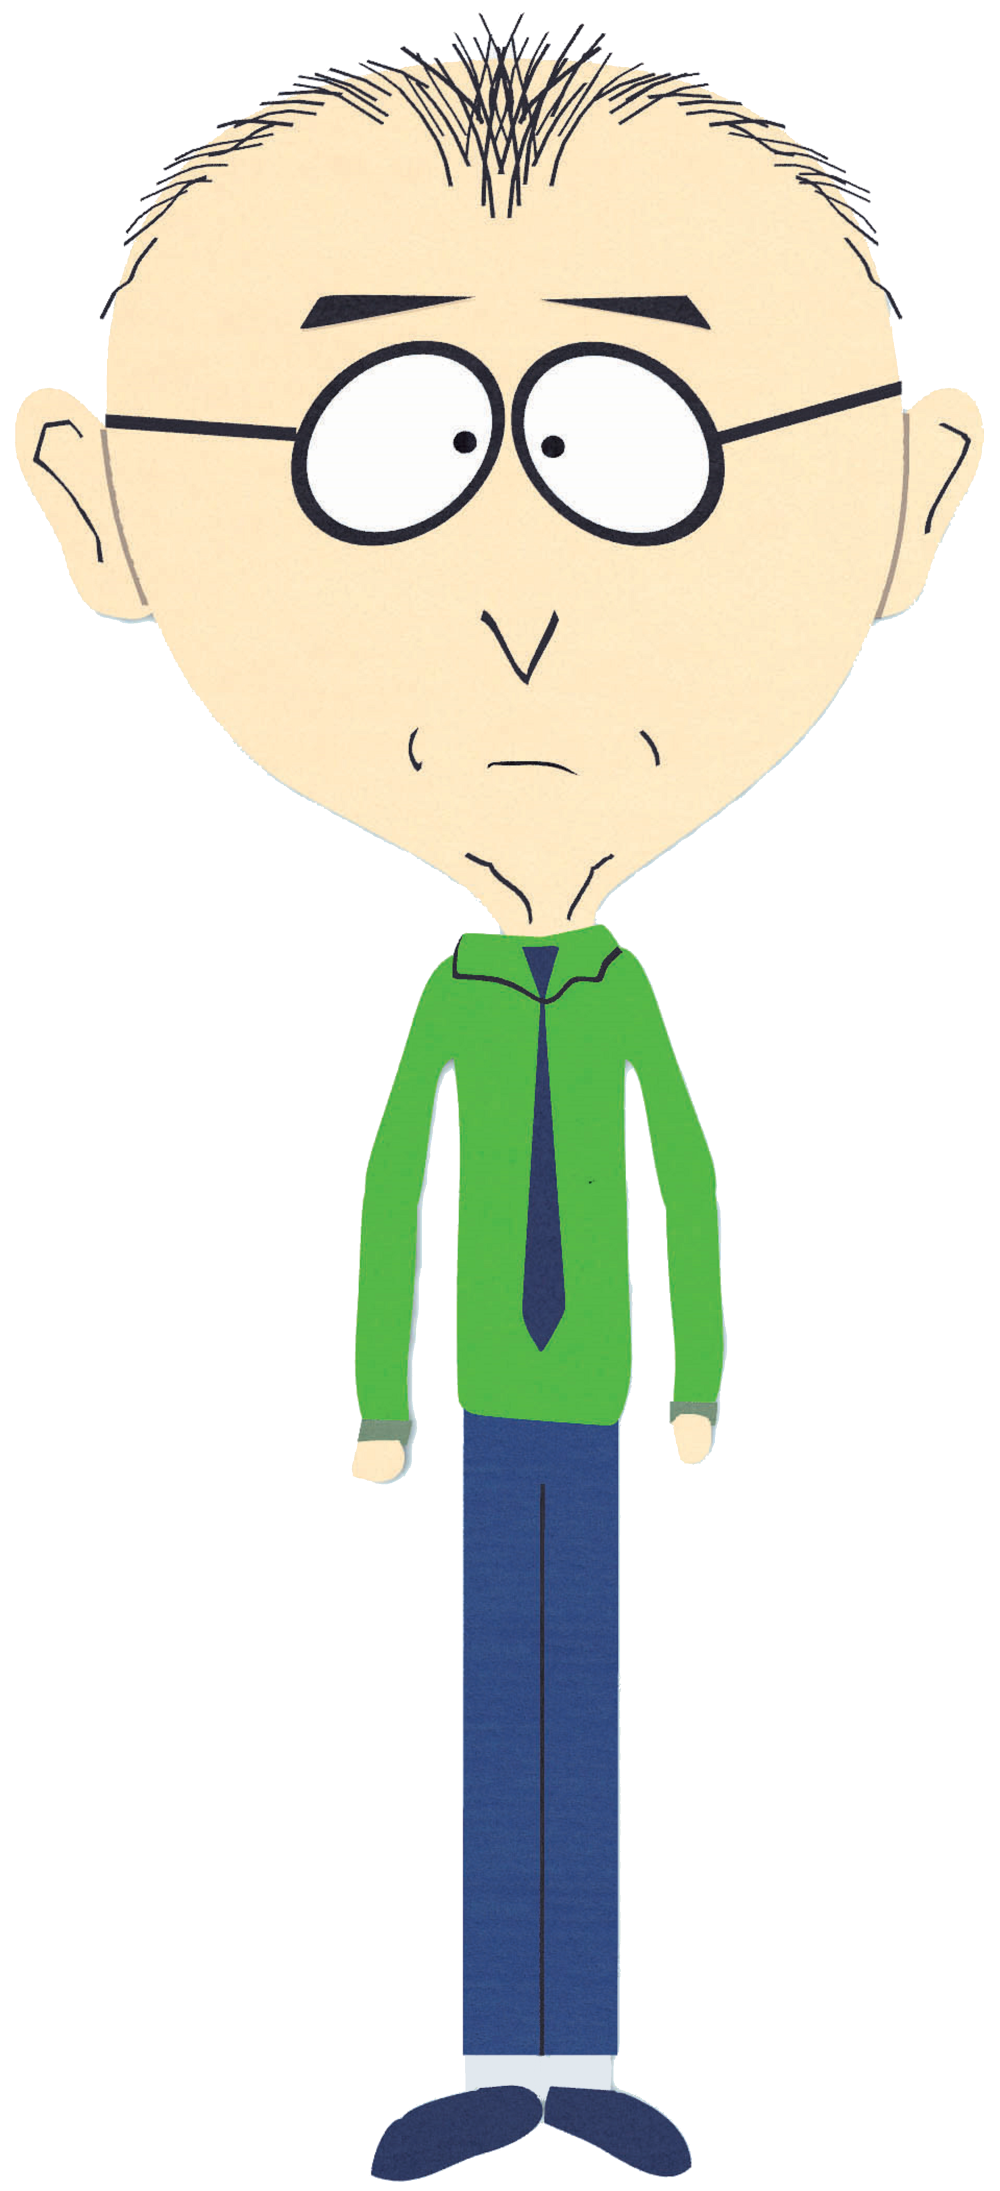 http://img2.wikia.nocookie.net/__cb20101124235700/southparkfanon/images/3/3a/MrMackey.png